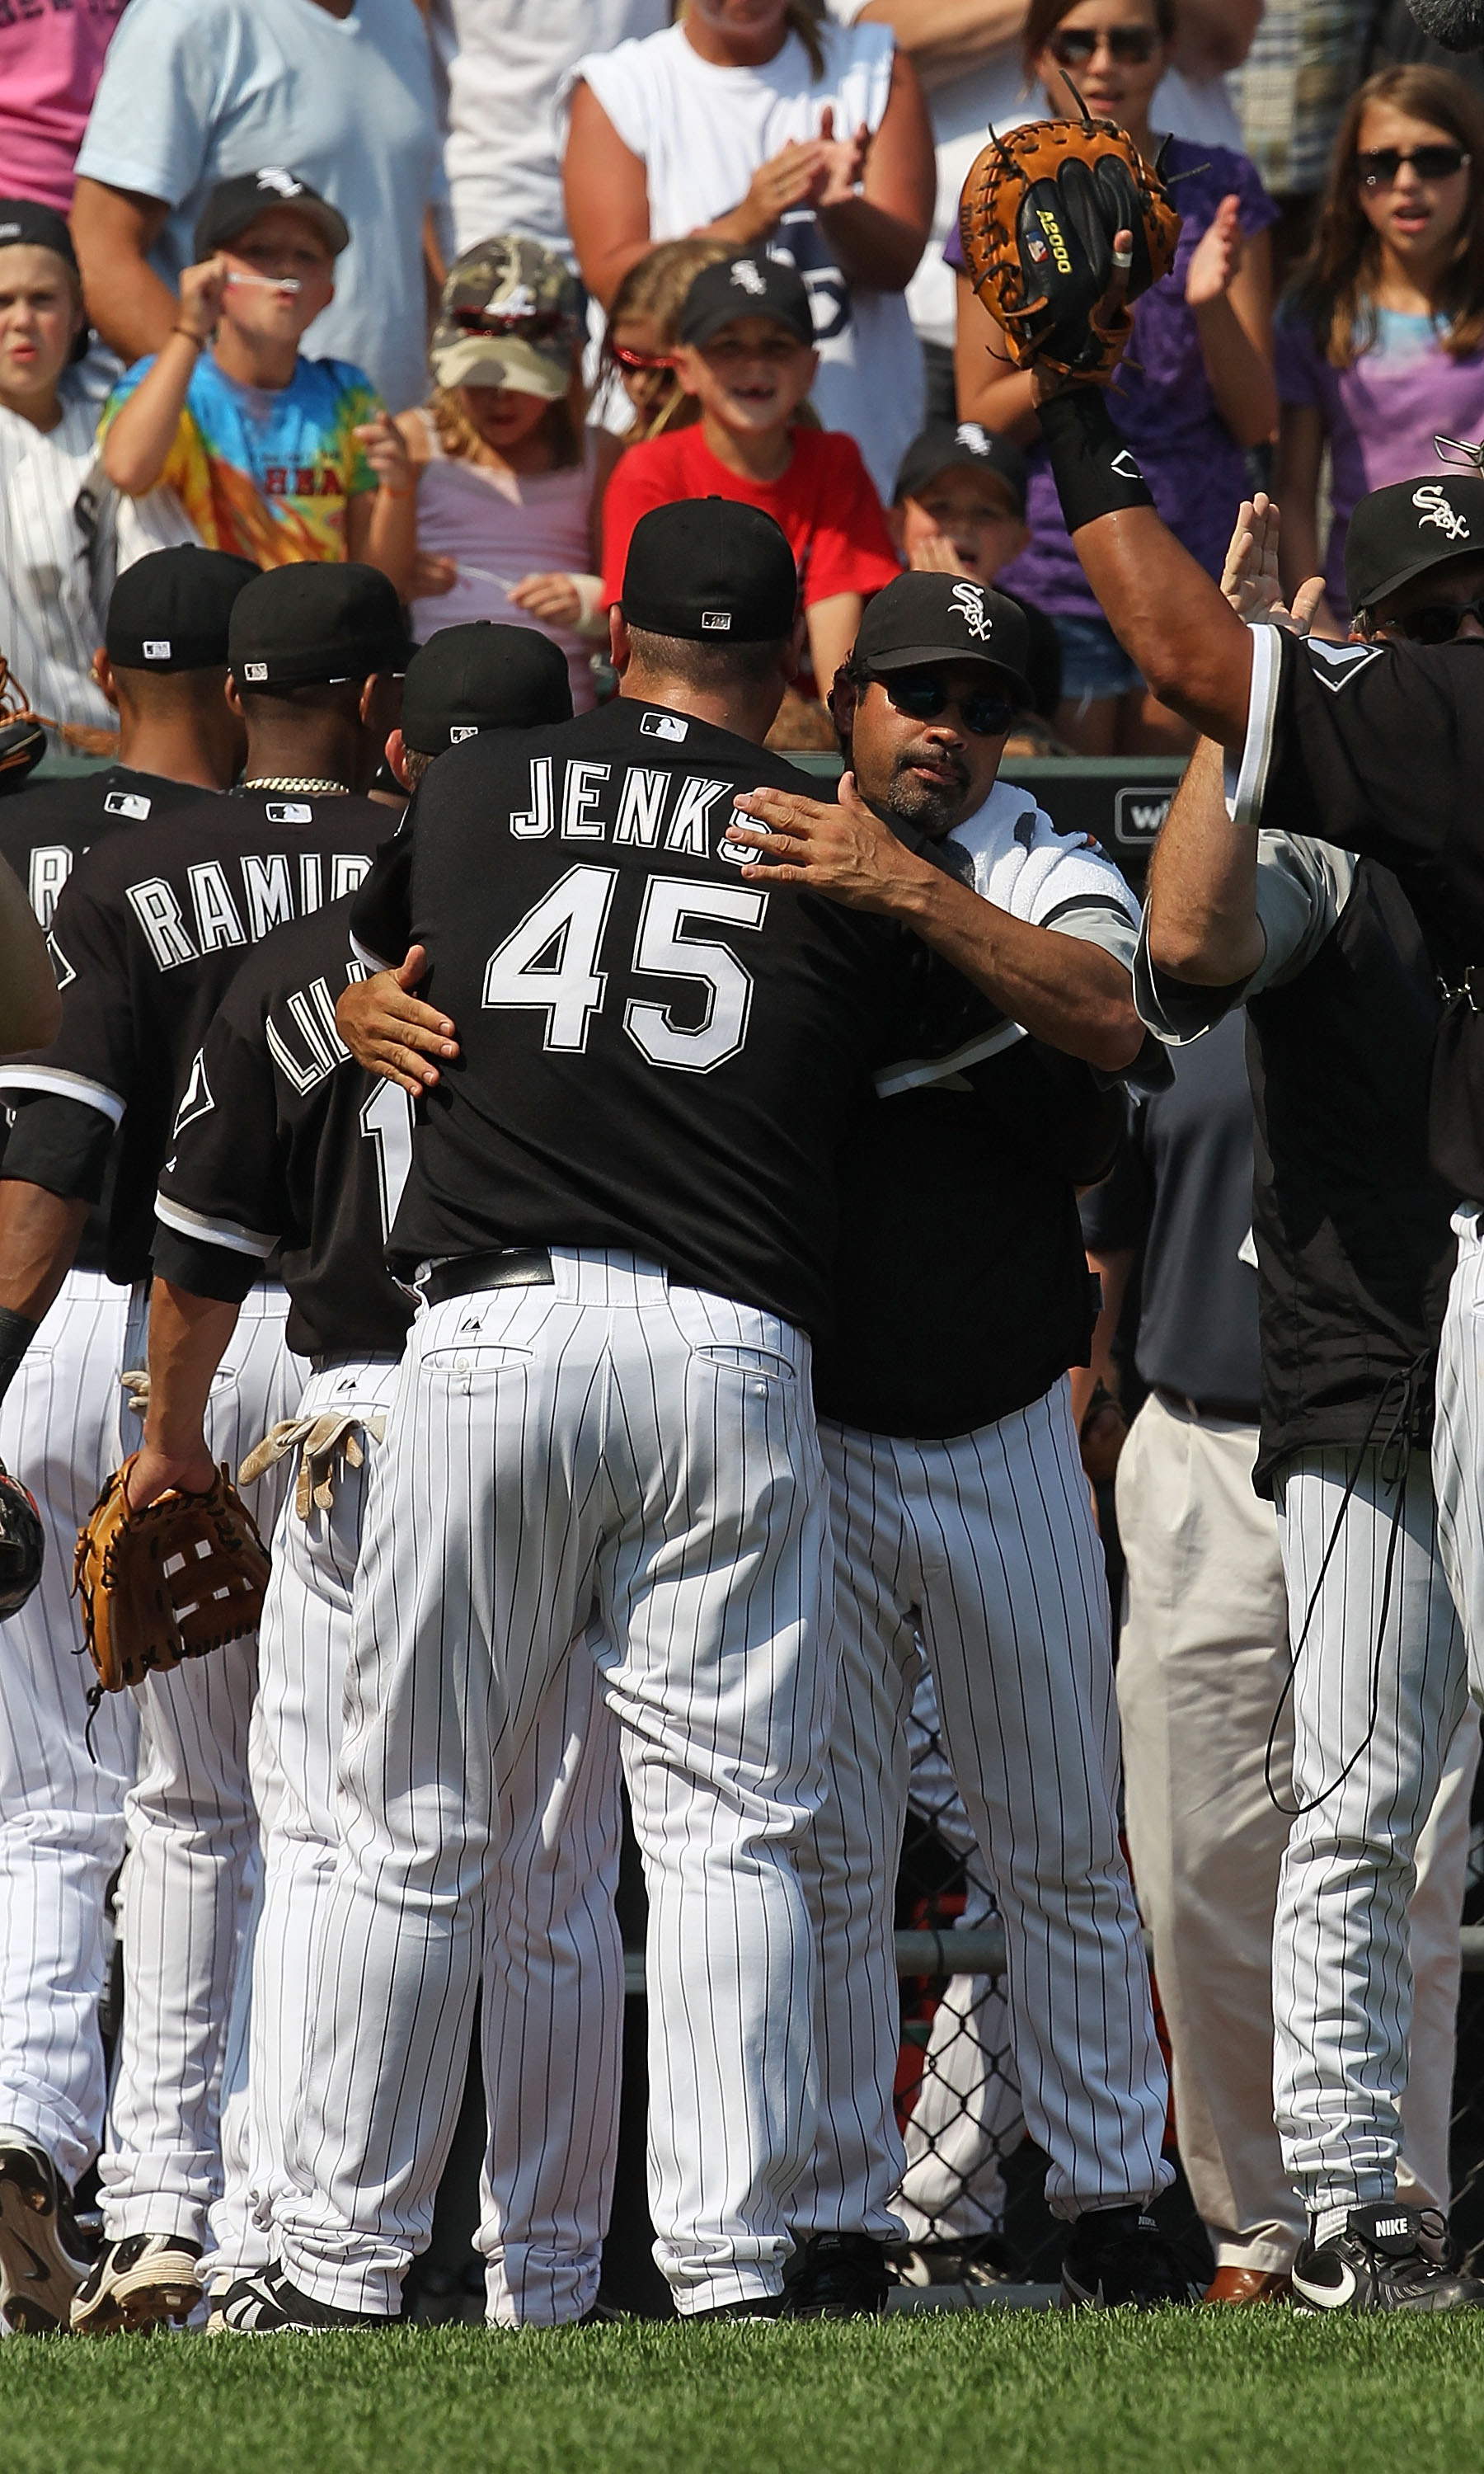 CHICAGO - AUGUST 01: Manager Ozzie Guillen #13 of the Chicago White Sox hugs closing pitcher Bobby Jenks #45 after a win over the Oakland Athletics at U.S. Cellular Field on August 1, 2010 in Chicago, Illinois. The White Sox defeated the Athletics 4-1. (P